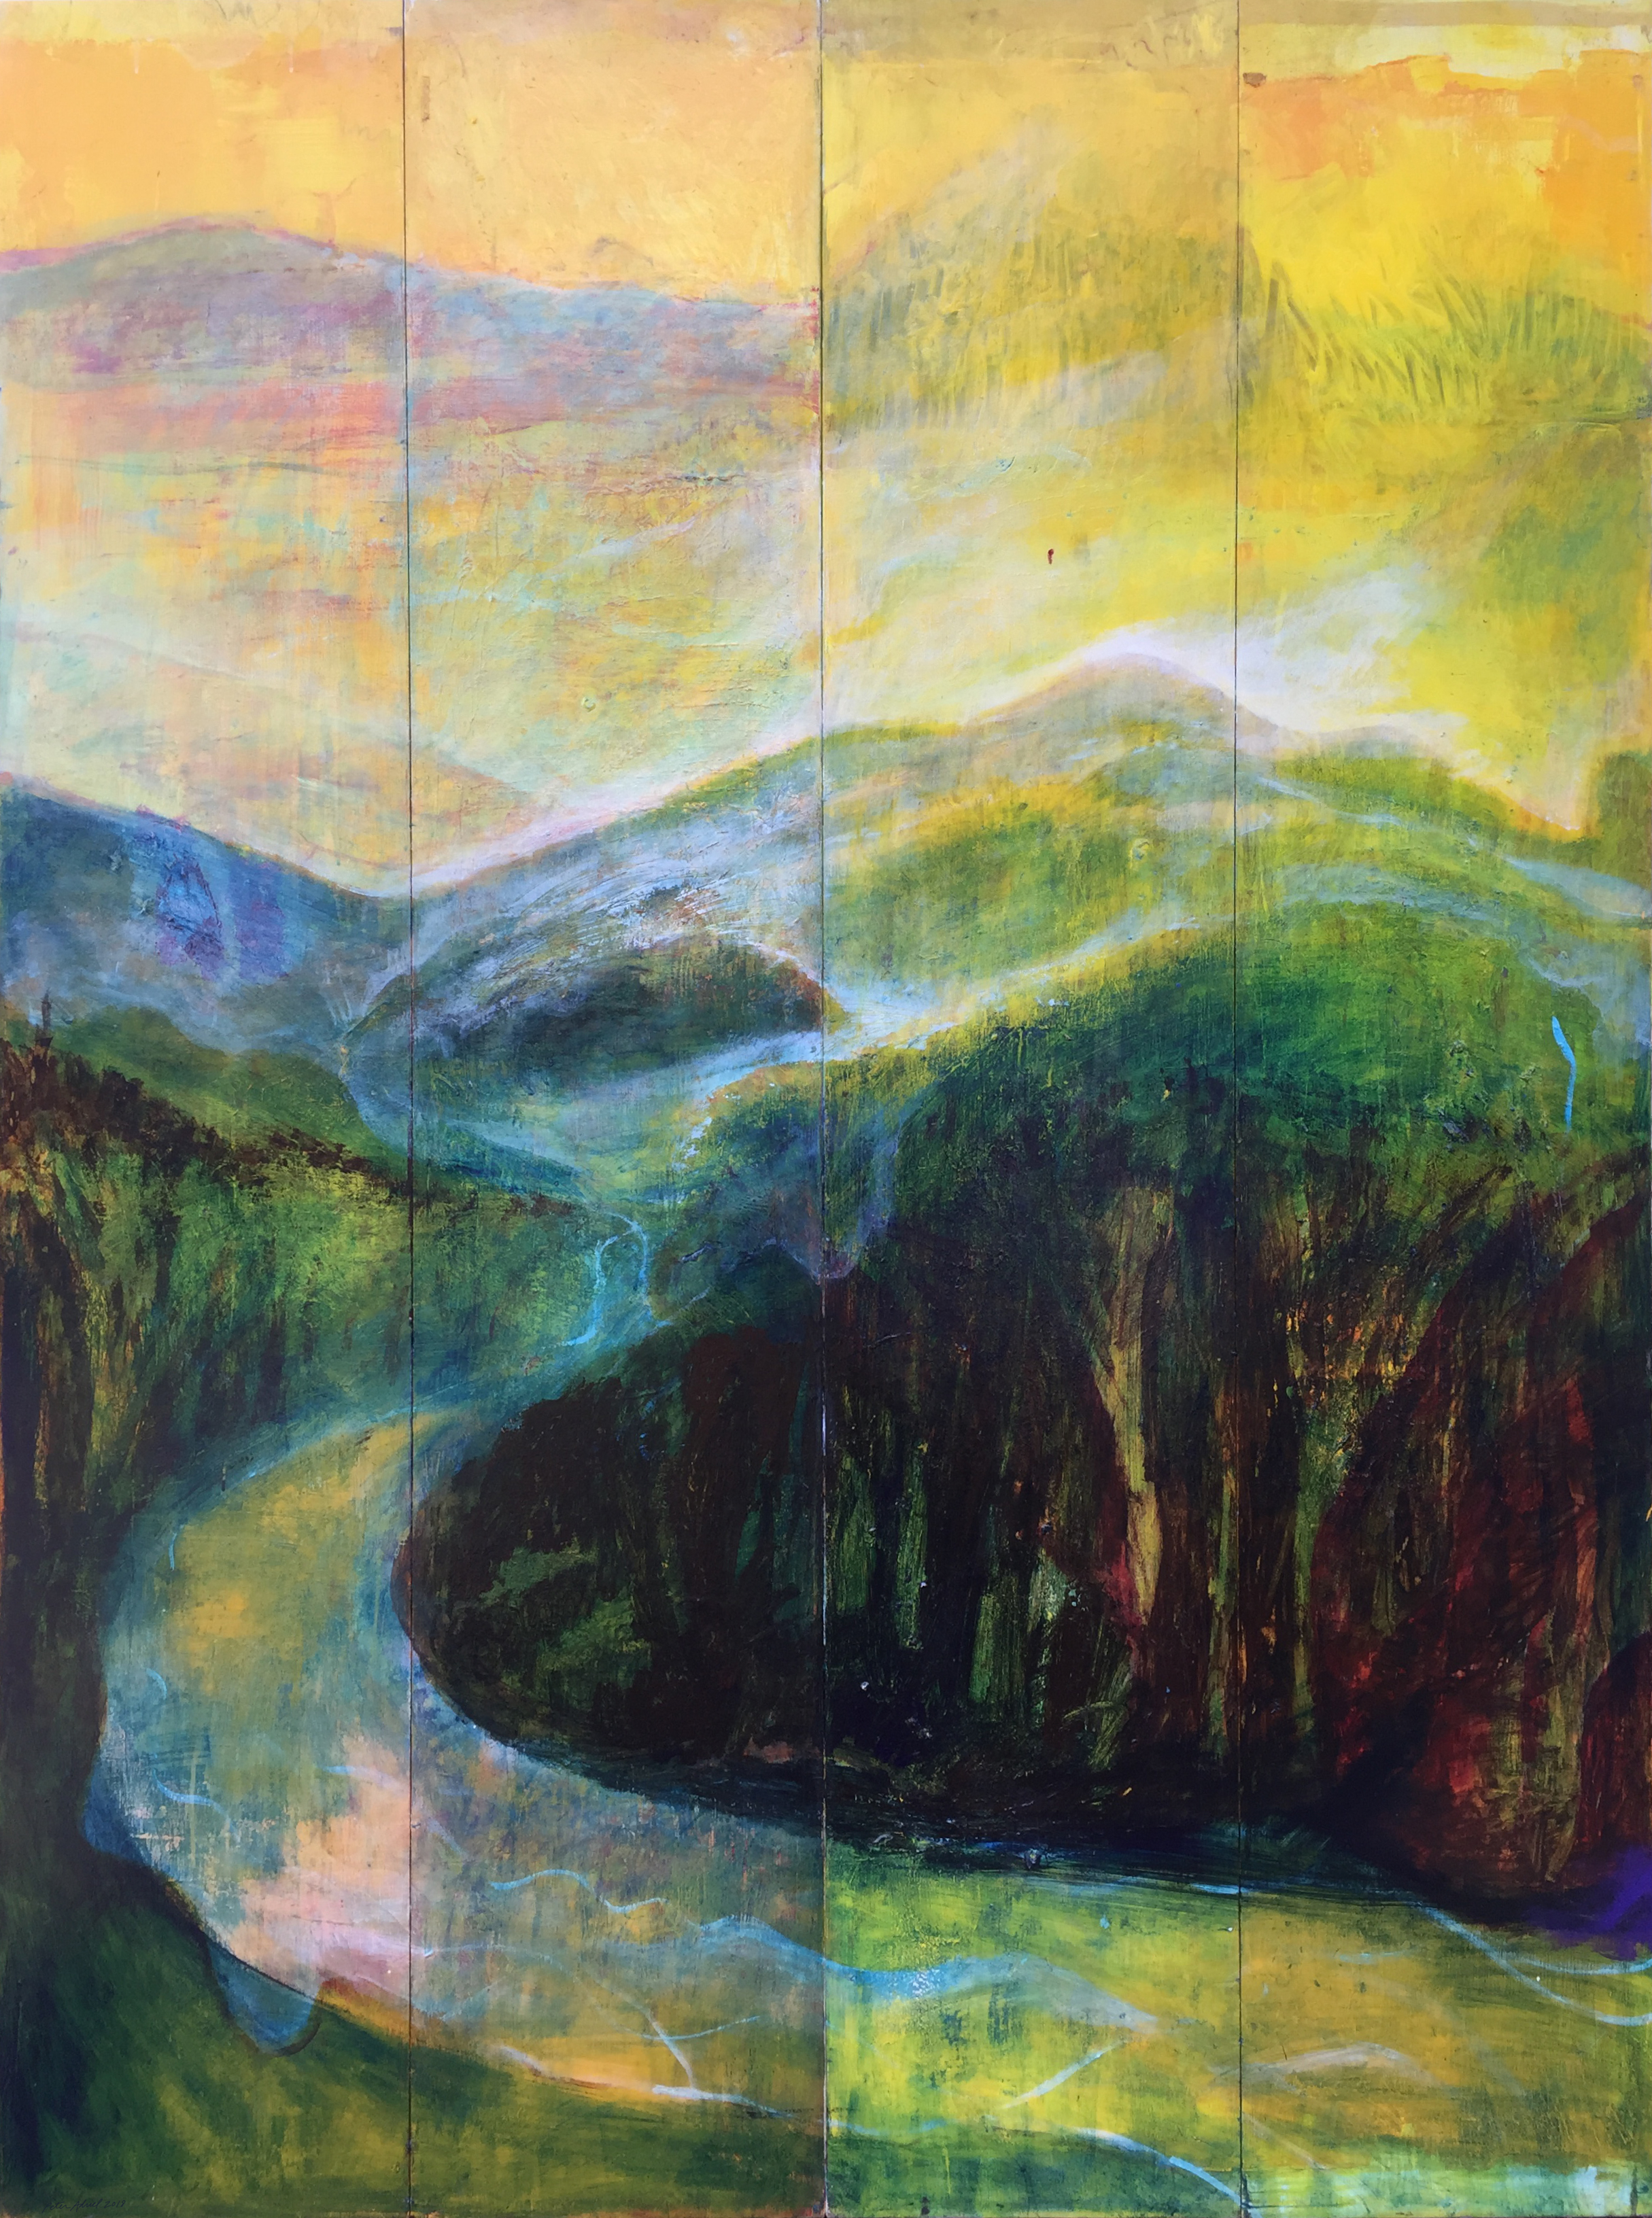 """Peter Adriel. Mountains. 2018. Acrylic on wood panels. 79"""" x 59"""""""